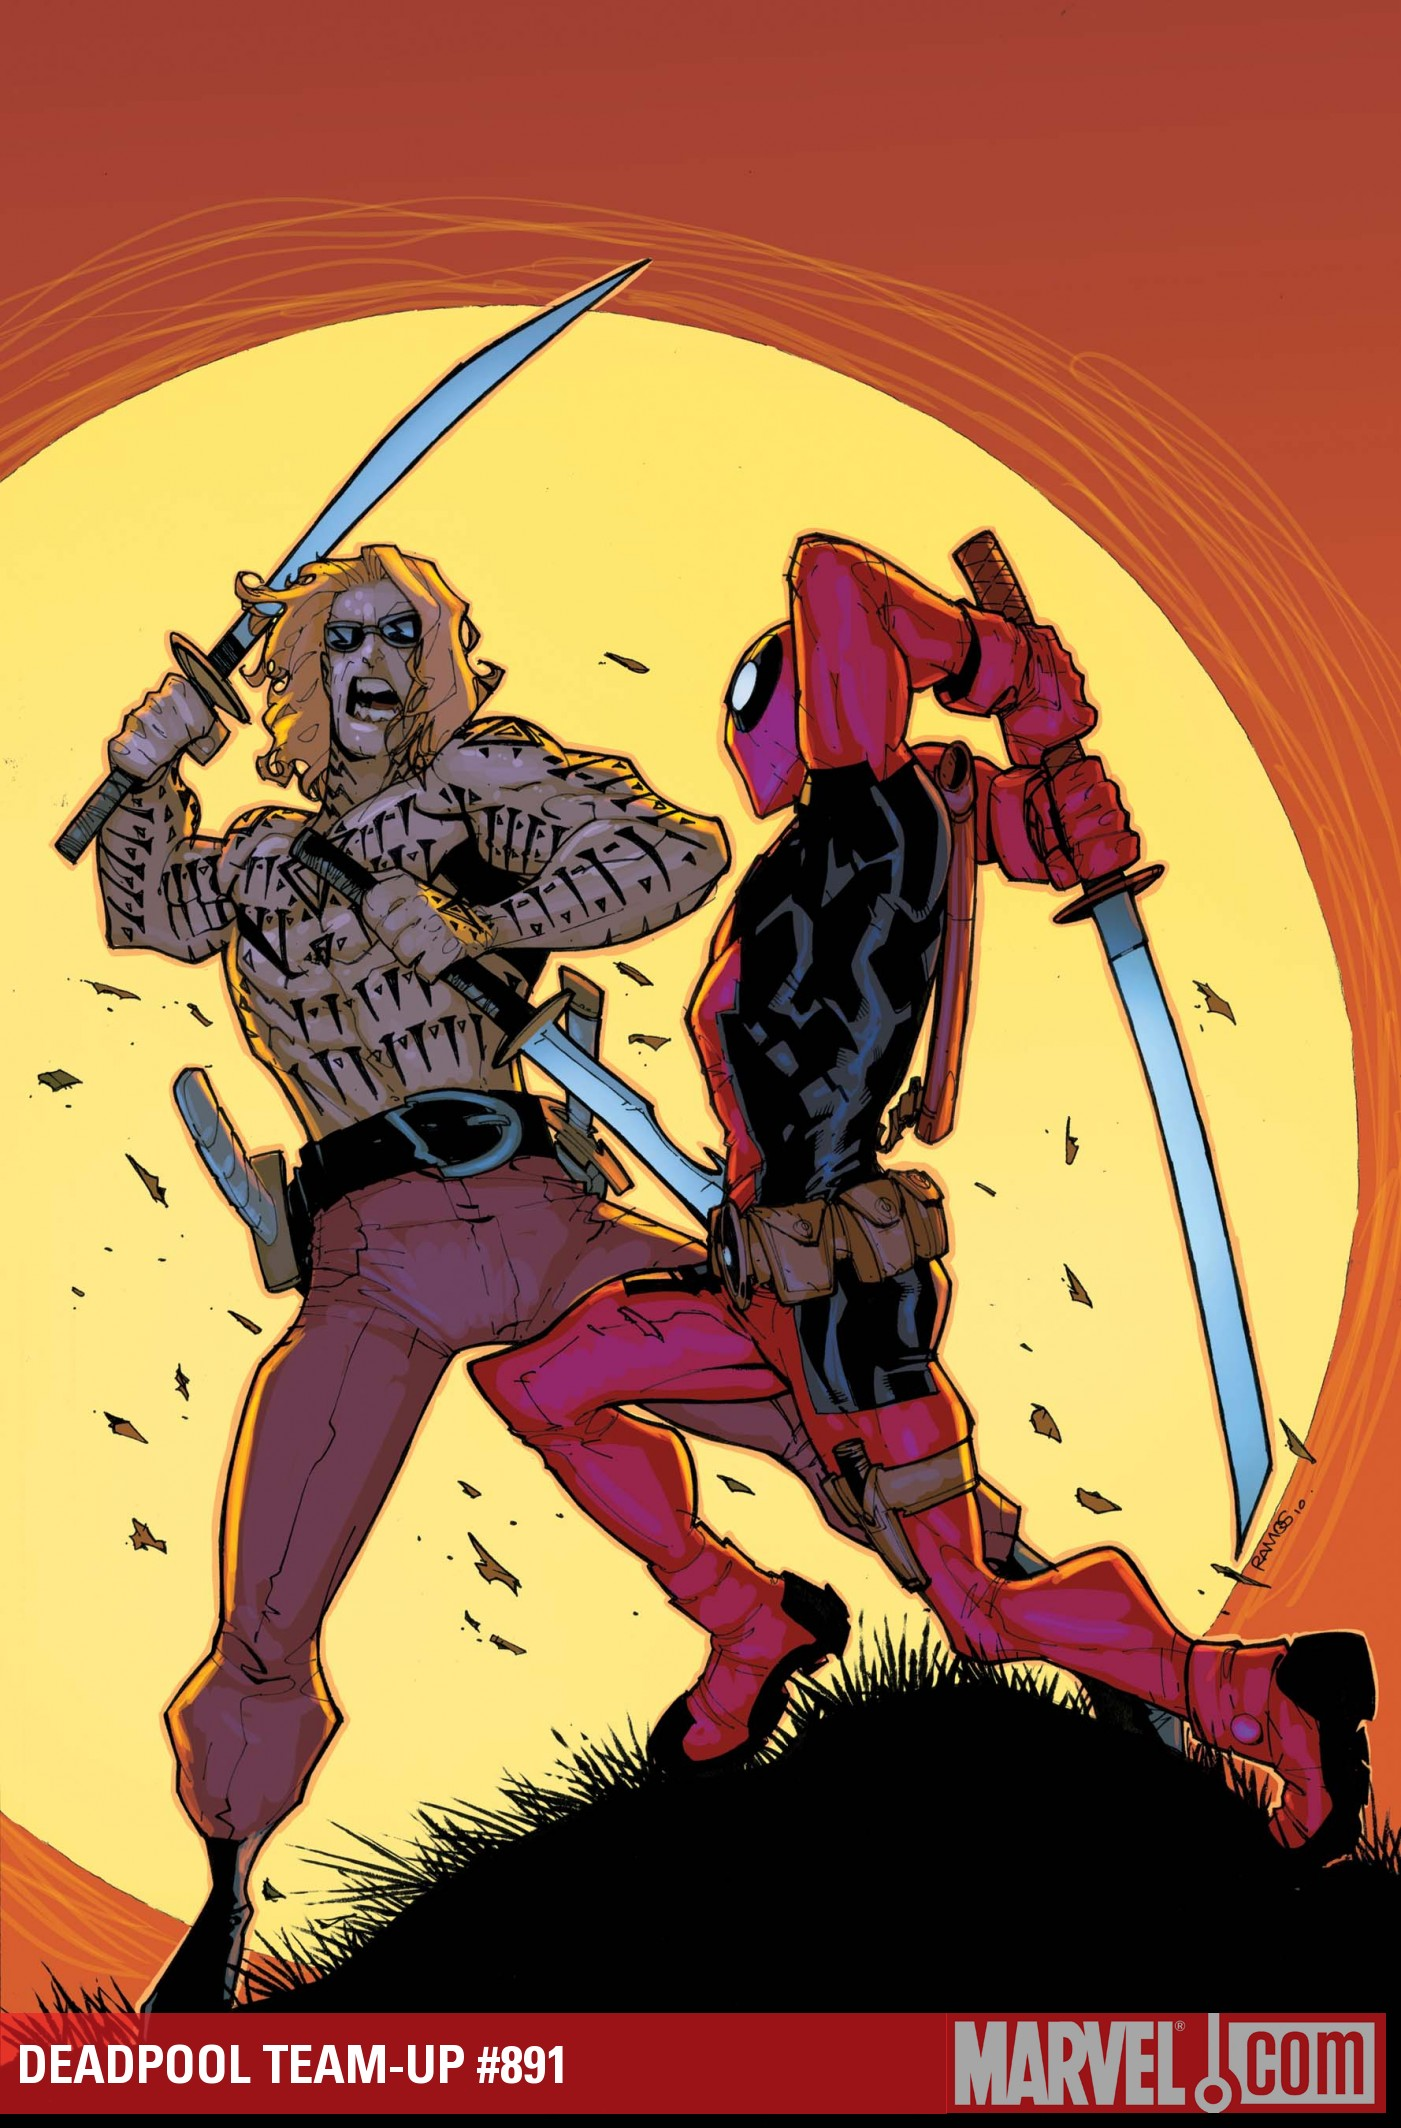 31_deadpool_team_up_891